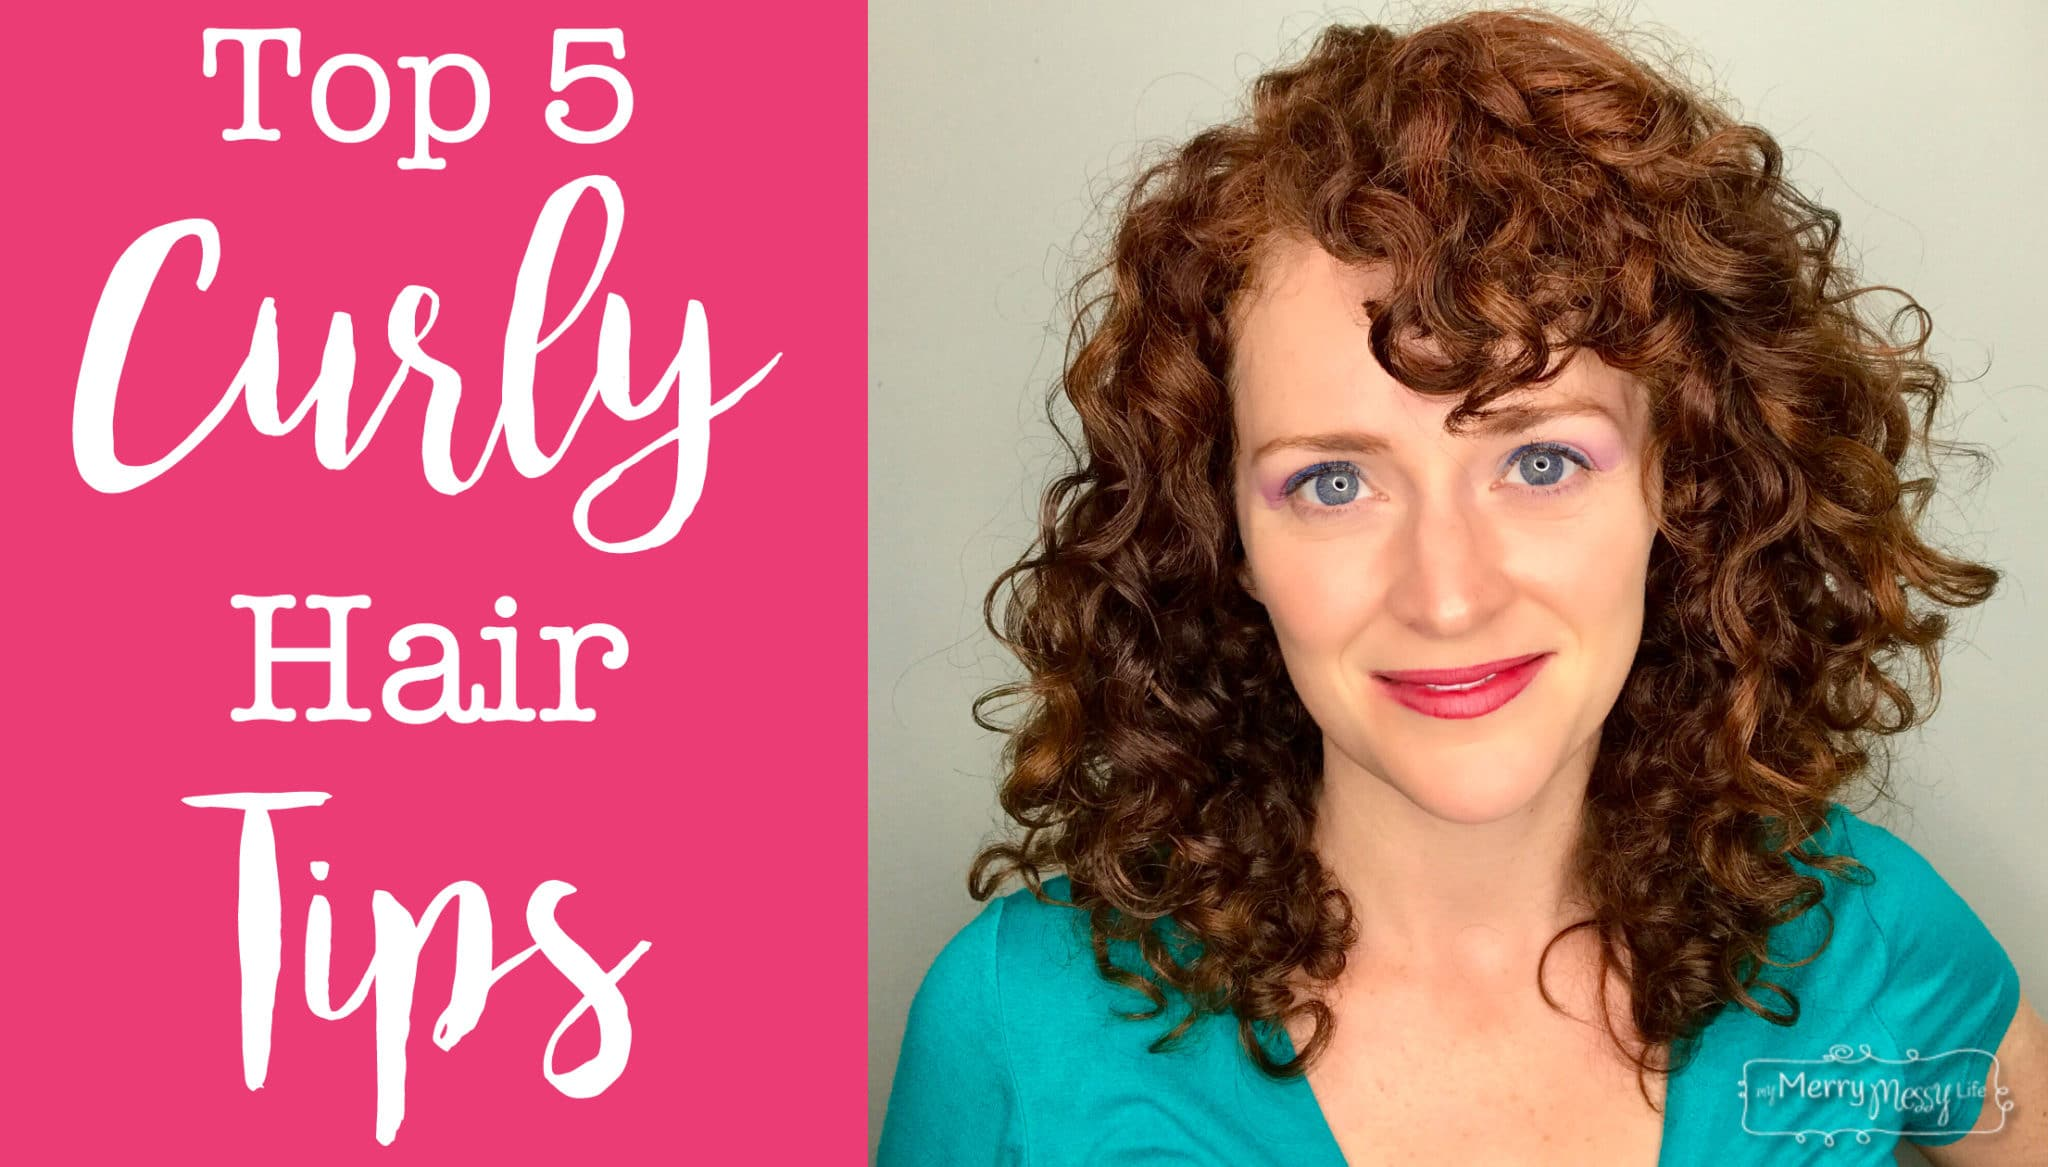 Top 5 Curly Hair Tips